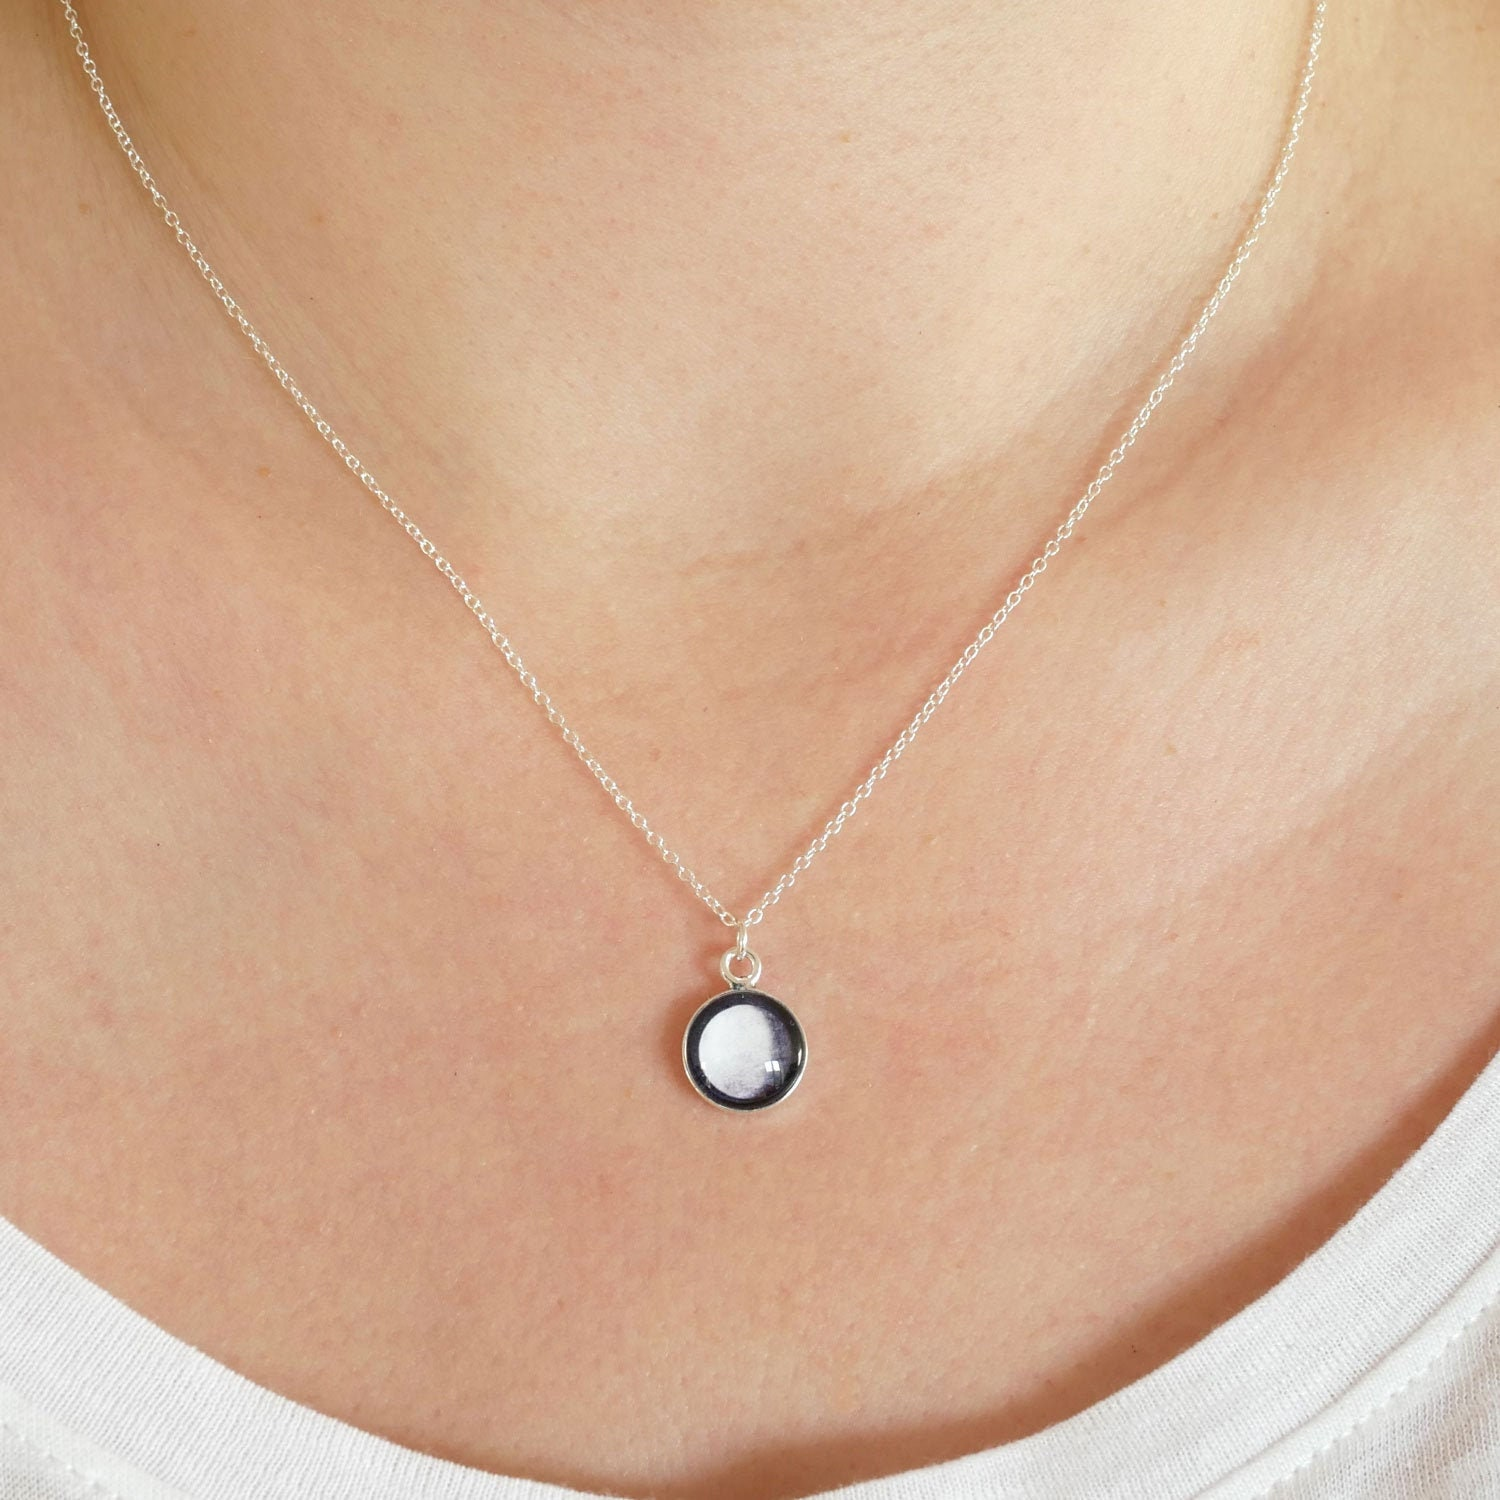 Tiny Sterling Silver Custom Moon Phase Necklace